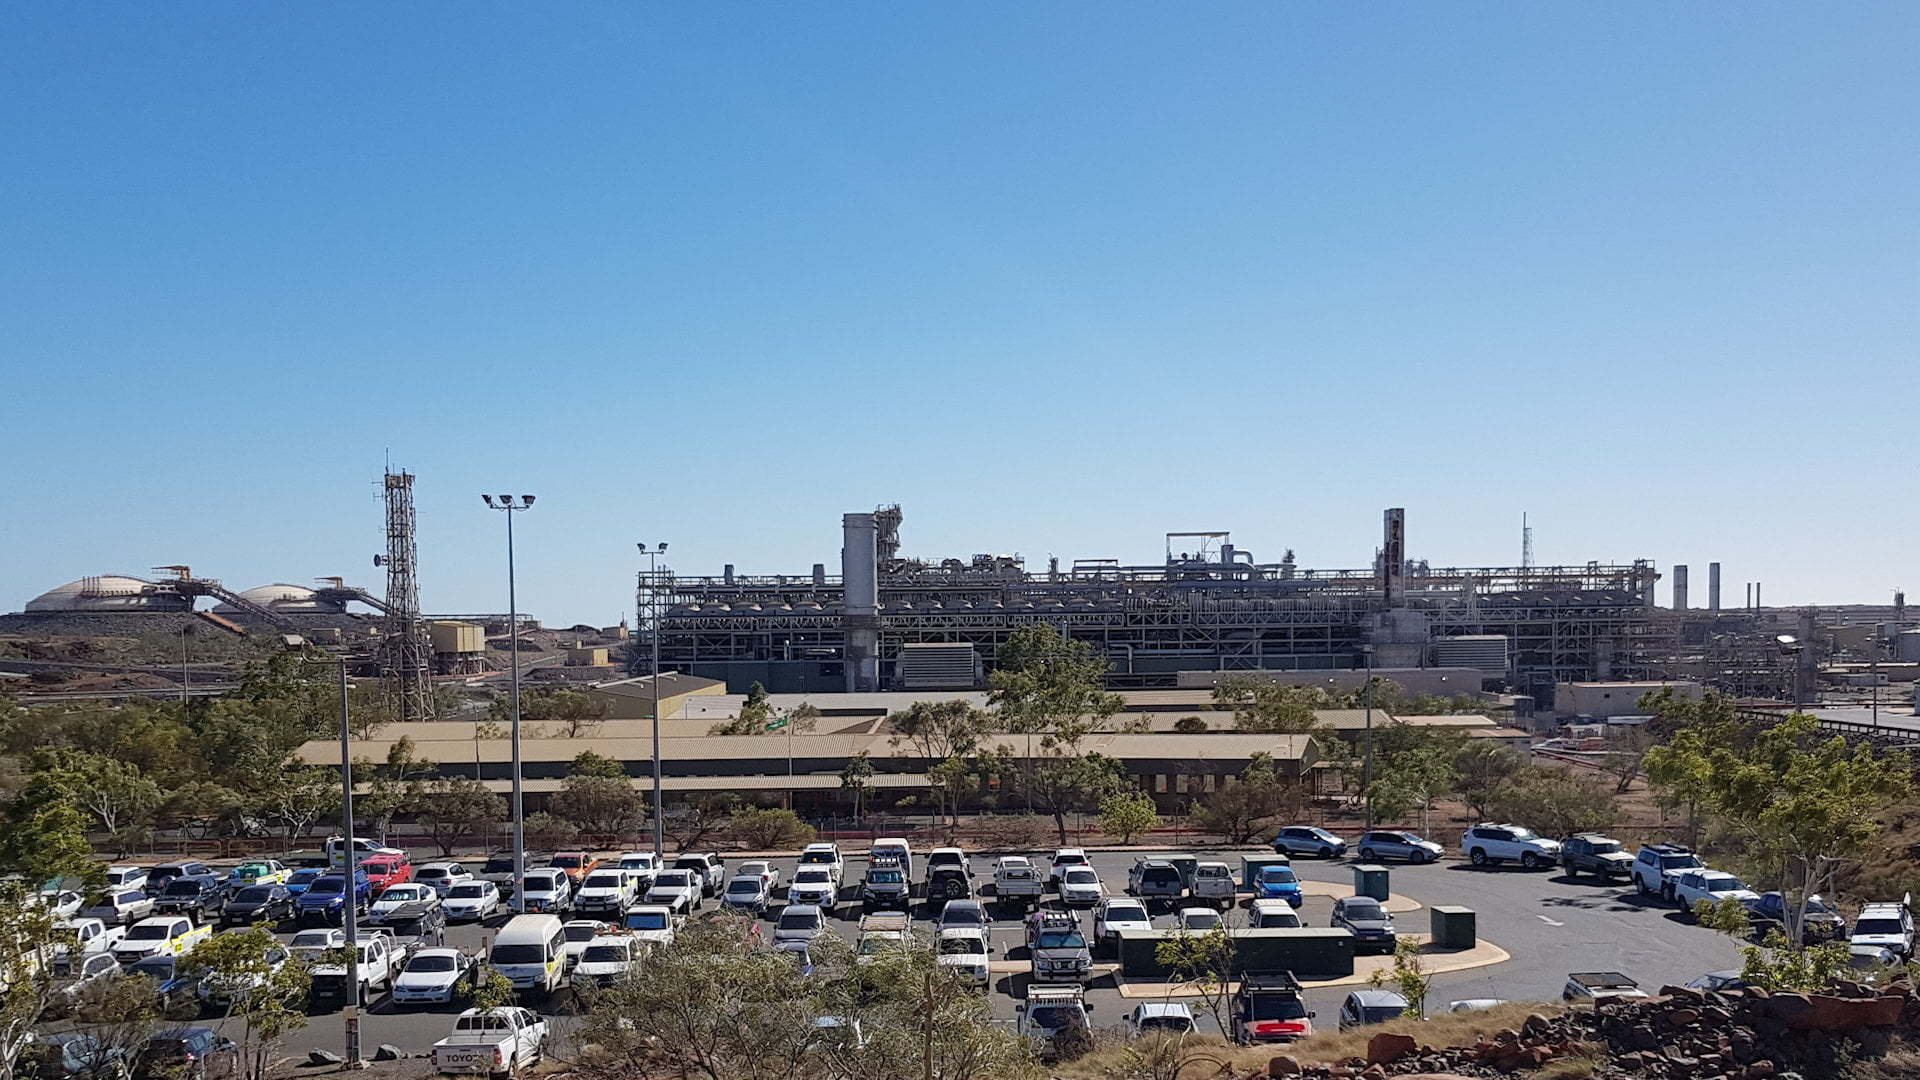 Karratha Gas Plant, NW Shelf Gas Project